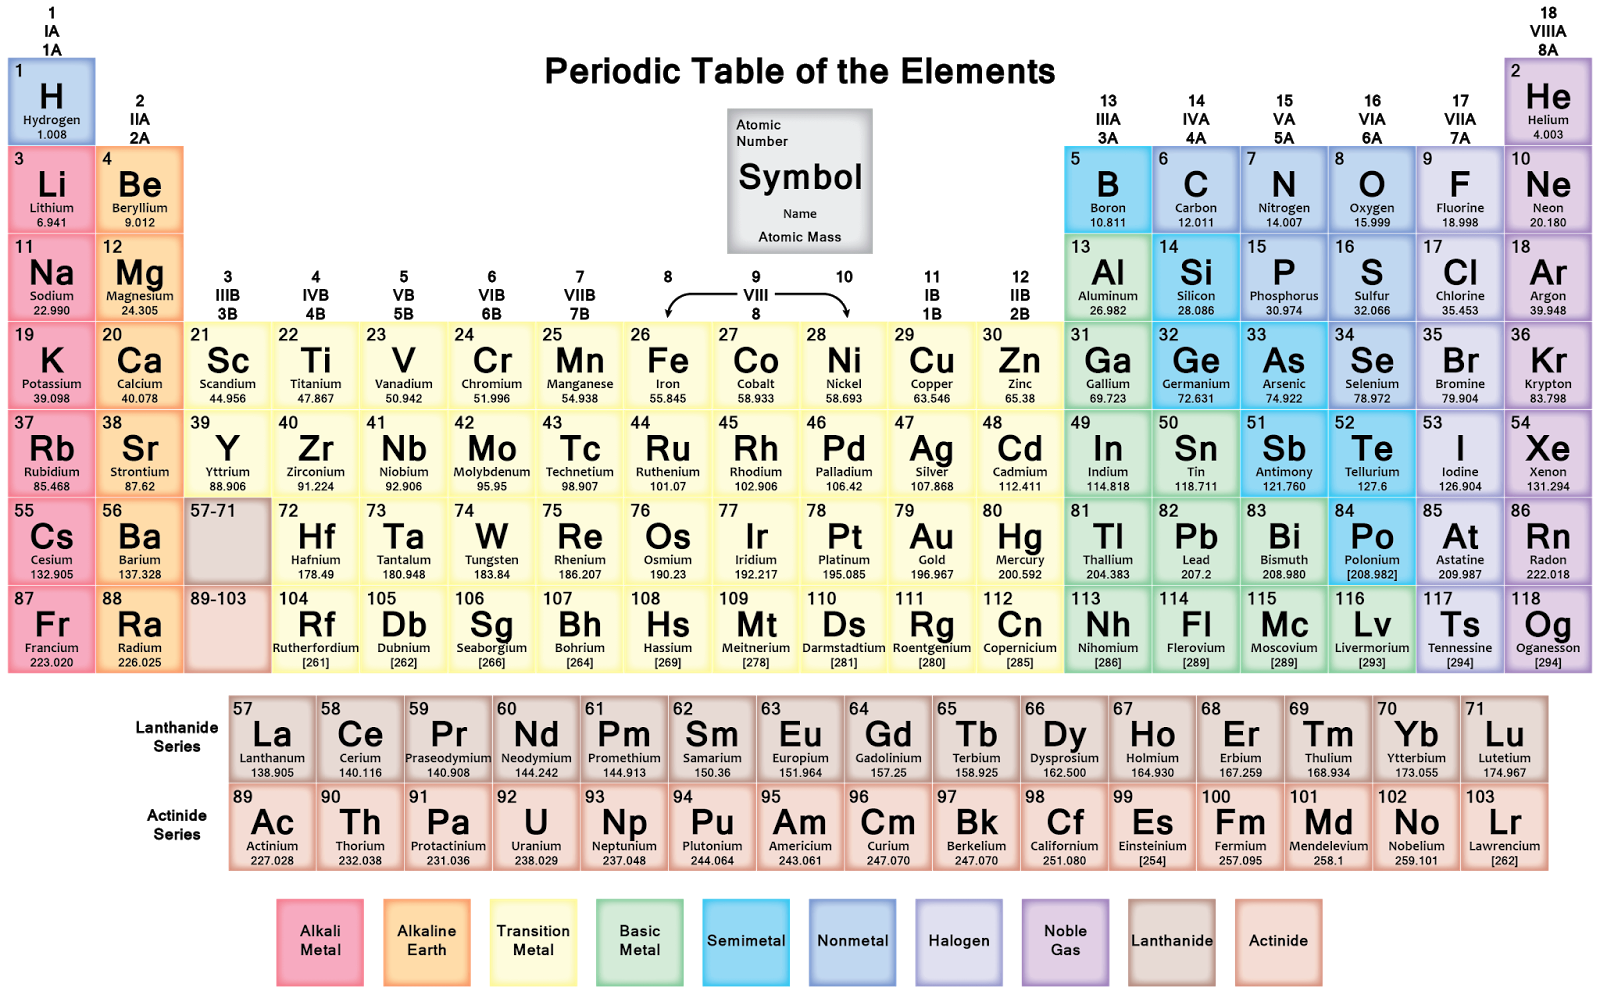 Blaines puzzle blog npr sunday puzzle oct 29 2017 metal drop a letter and the remaining letters in order will name a metal one of the elements on the periodic table gamestrikefo Choice Image